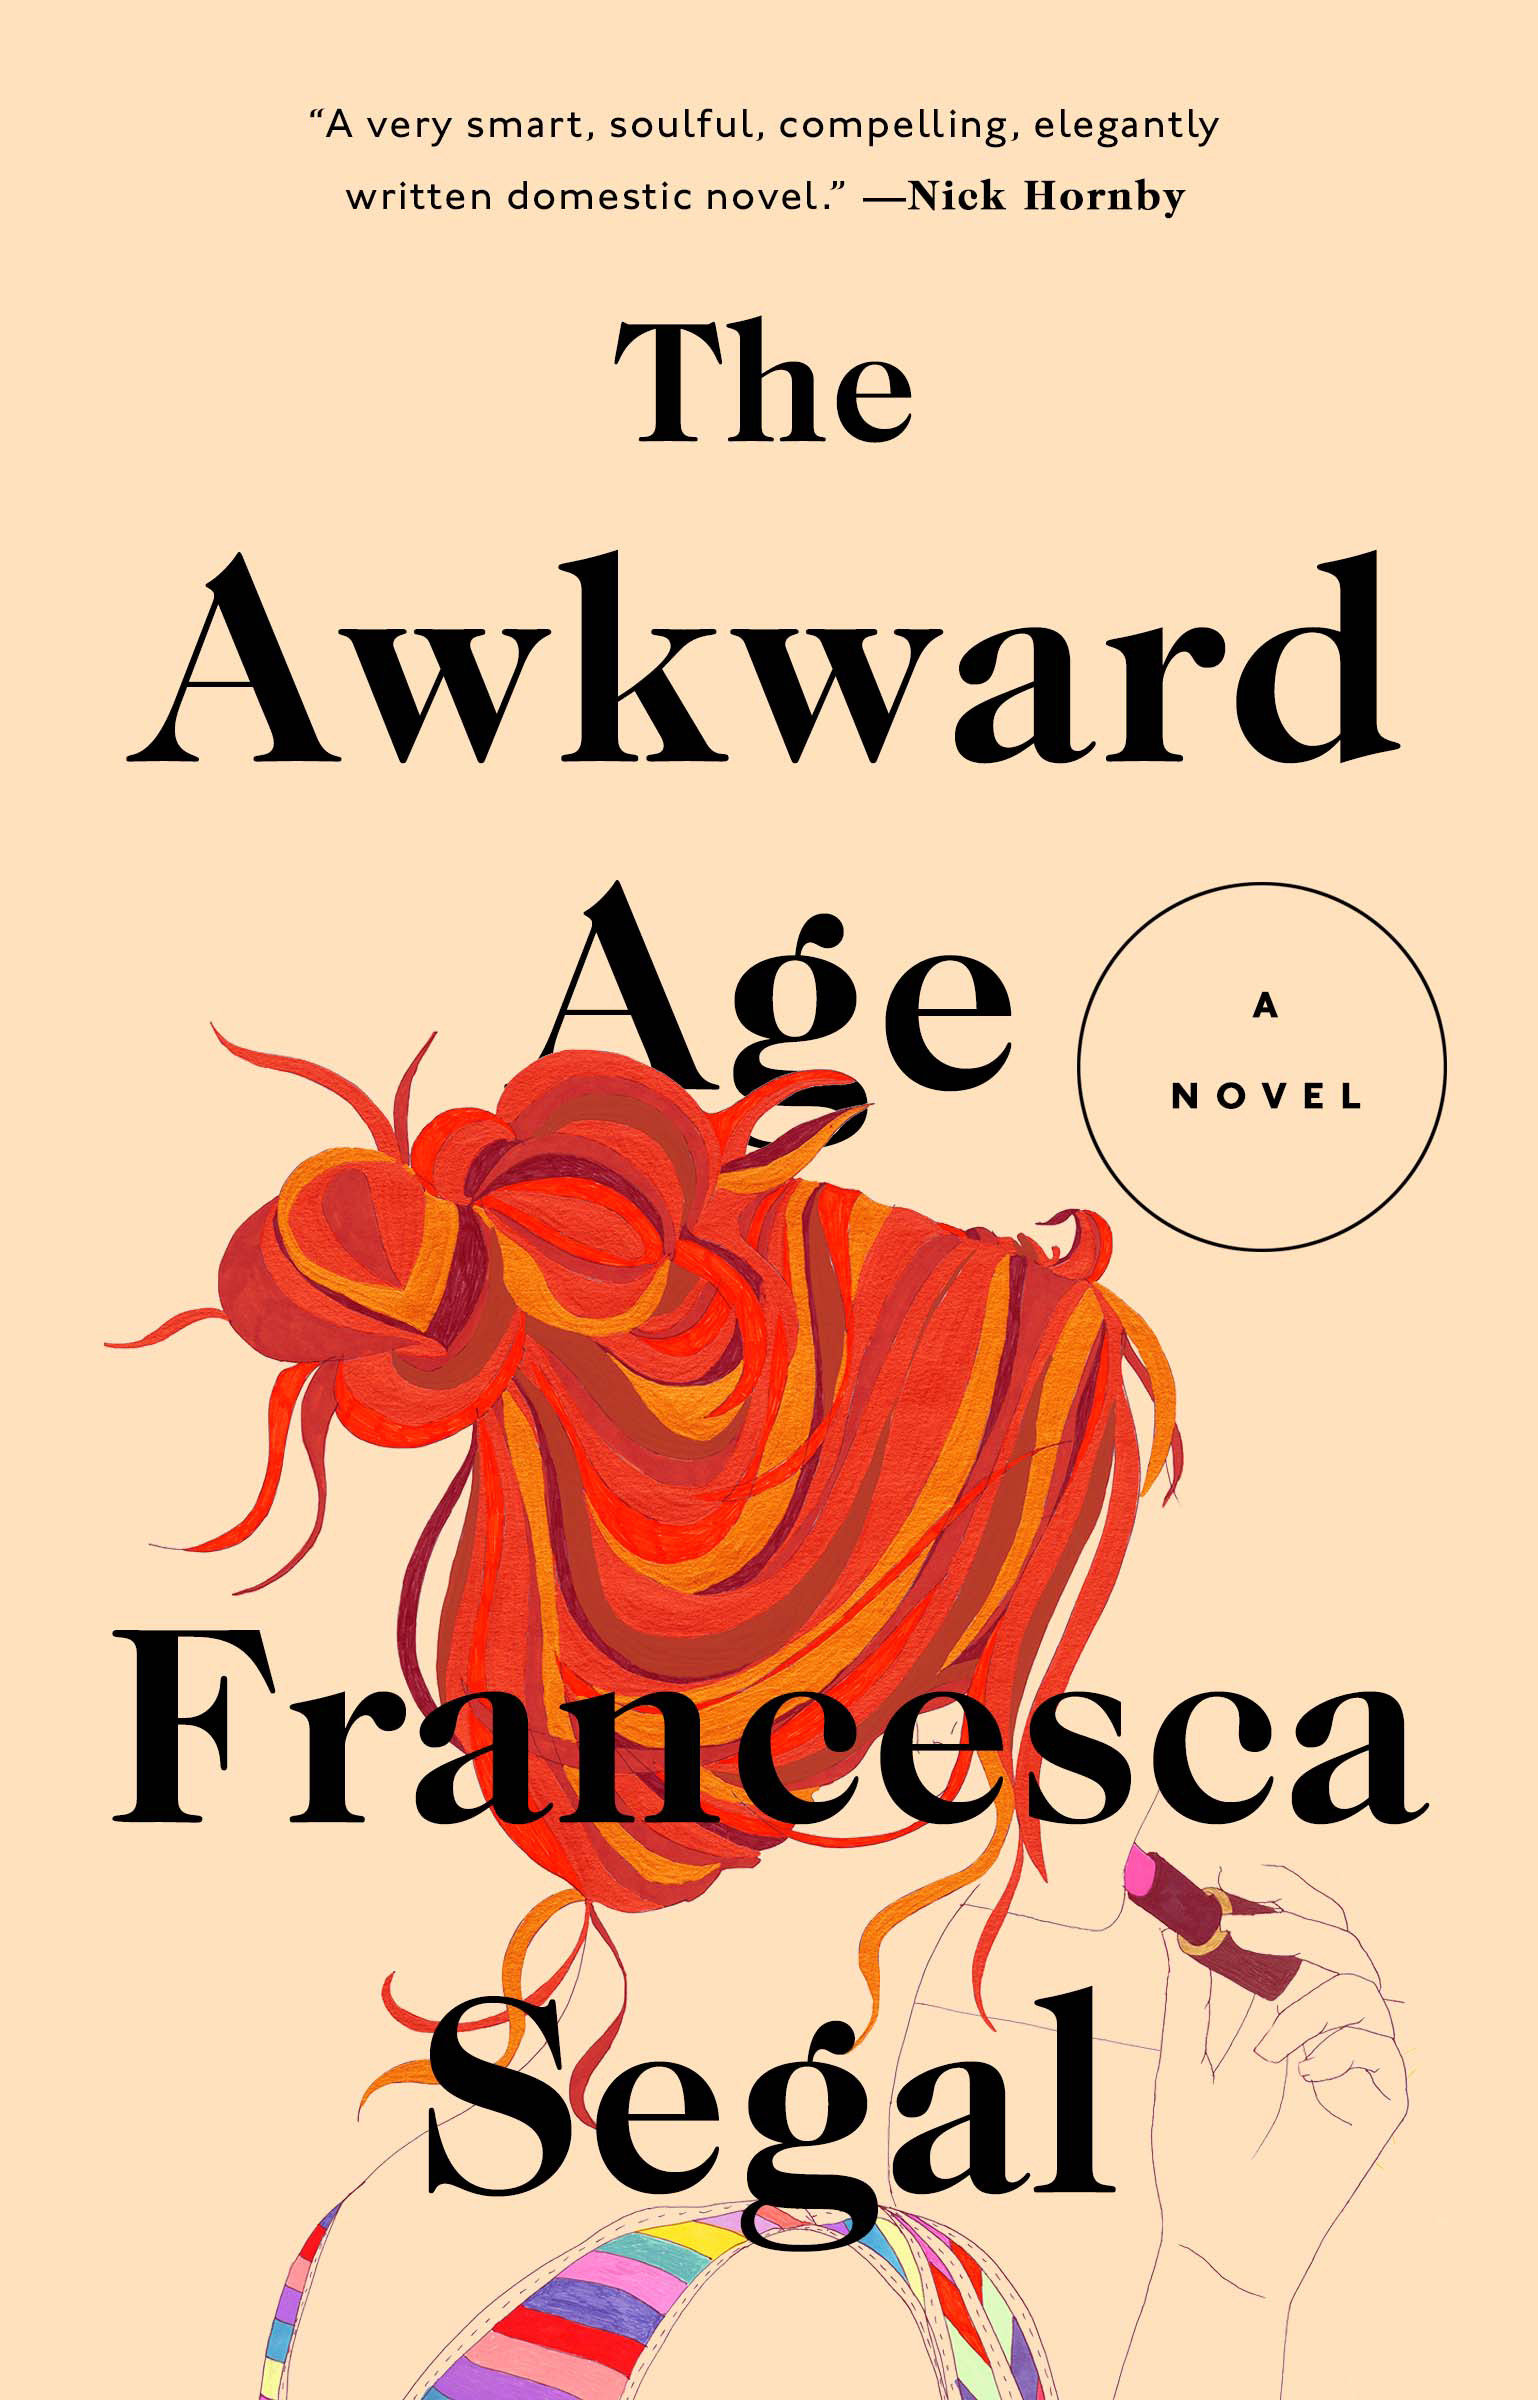 The awkward age cover image